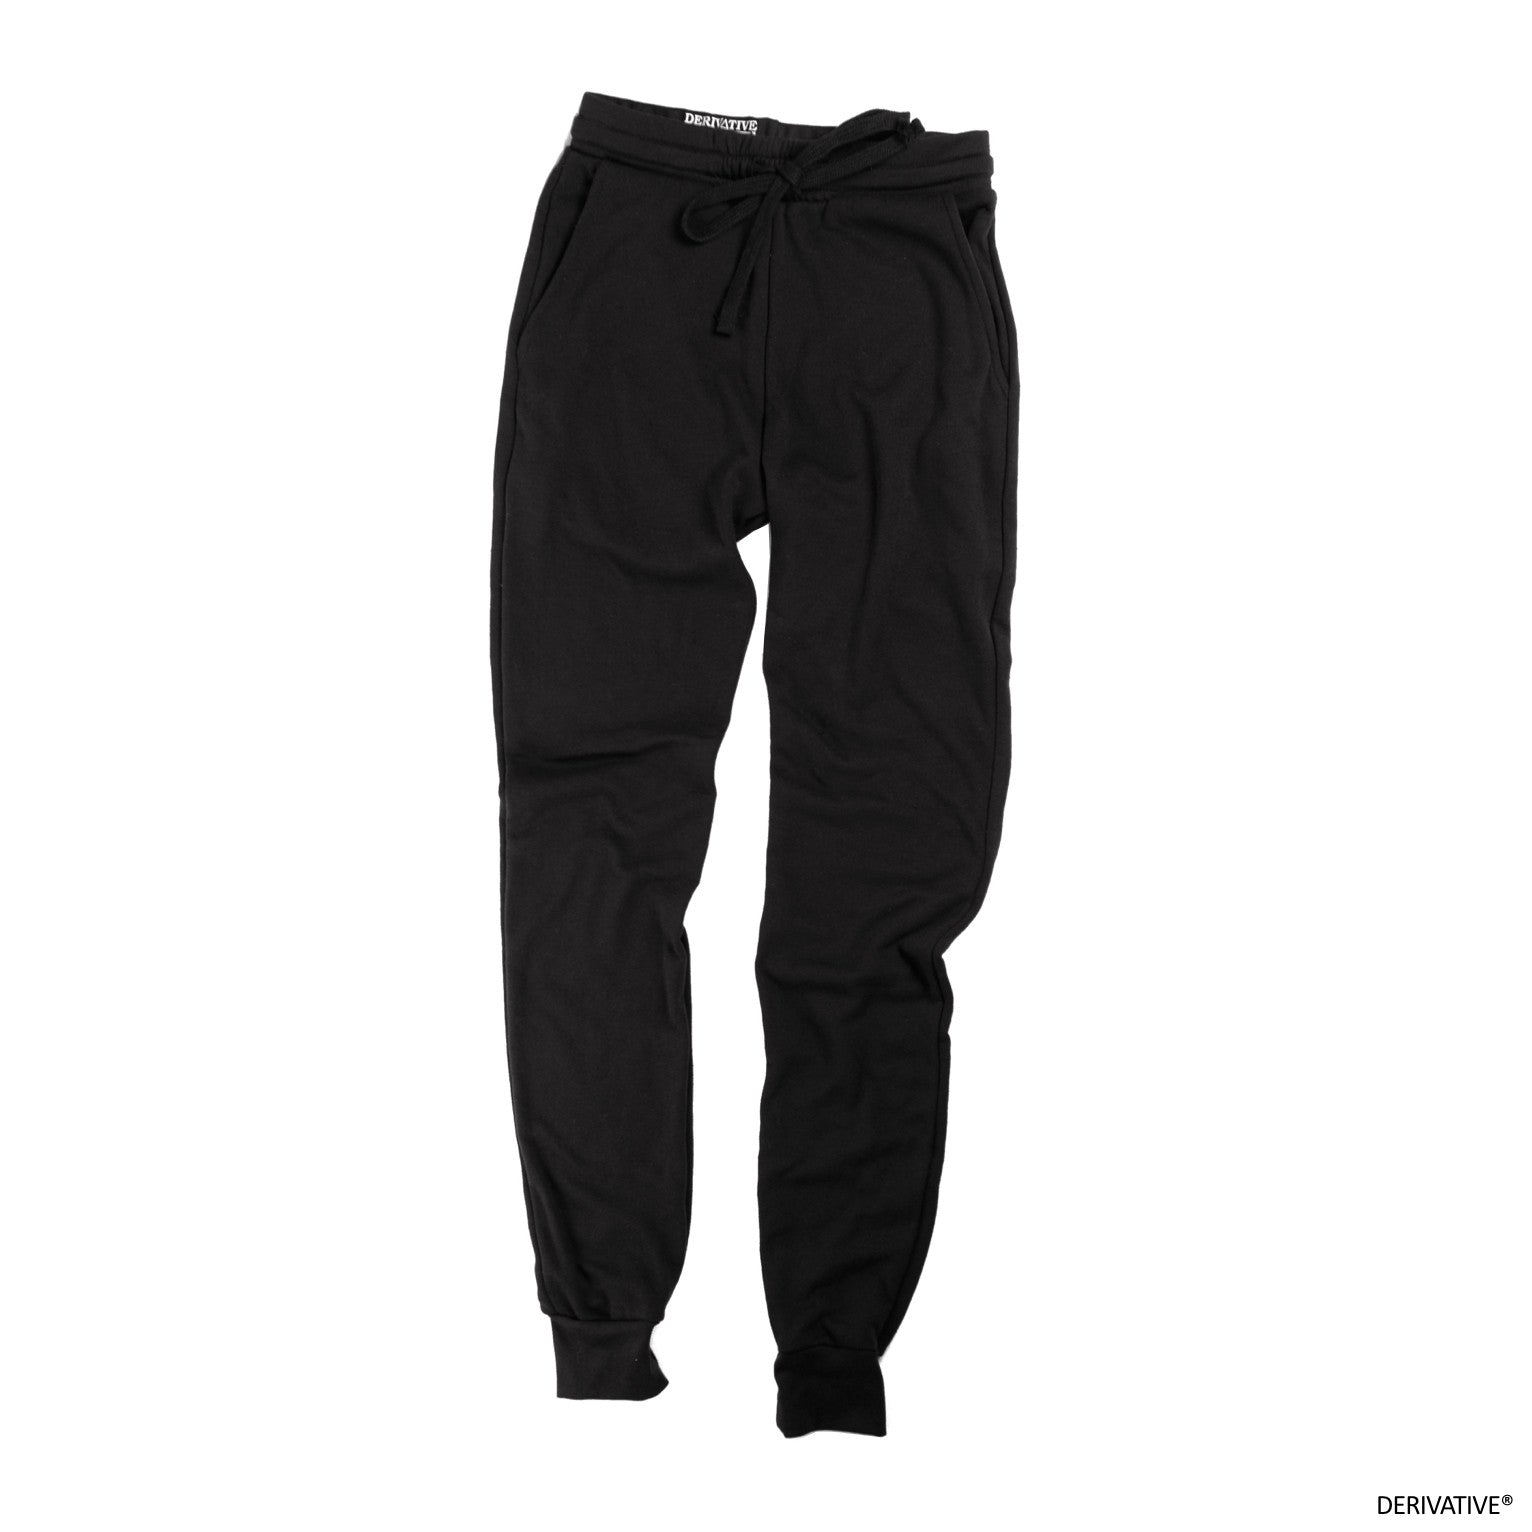 54081922f Organic Cotton & Recycled Polyester Unisex Joggers. Derivative